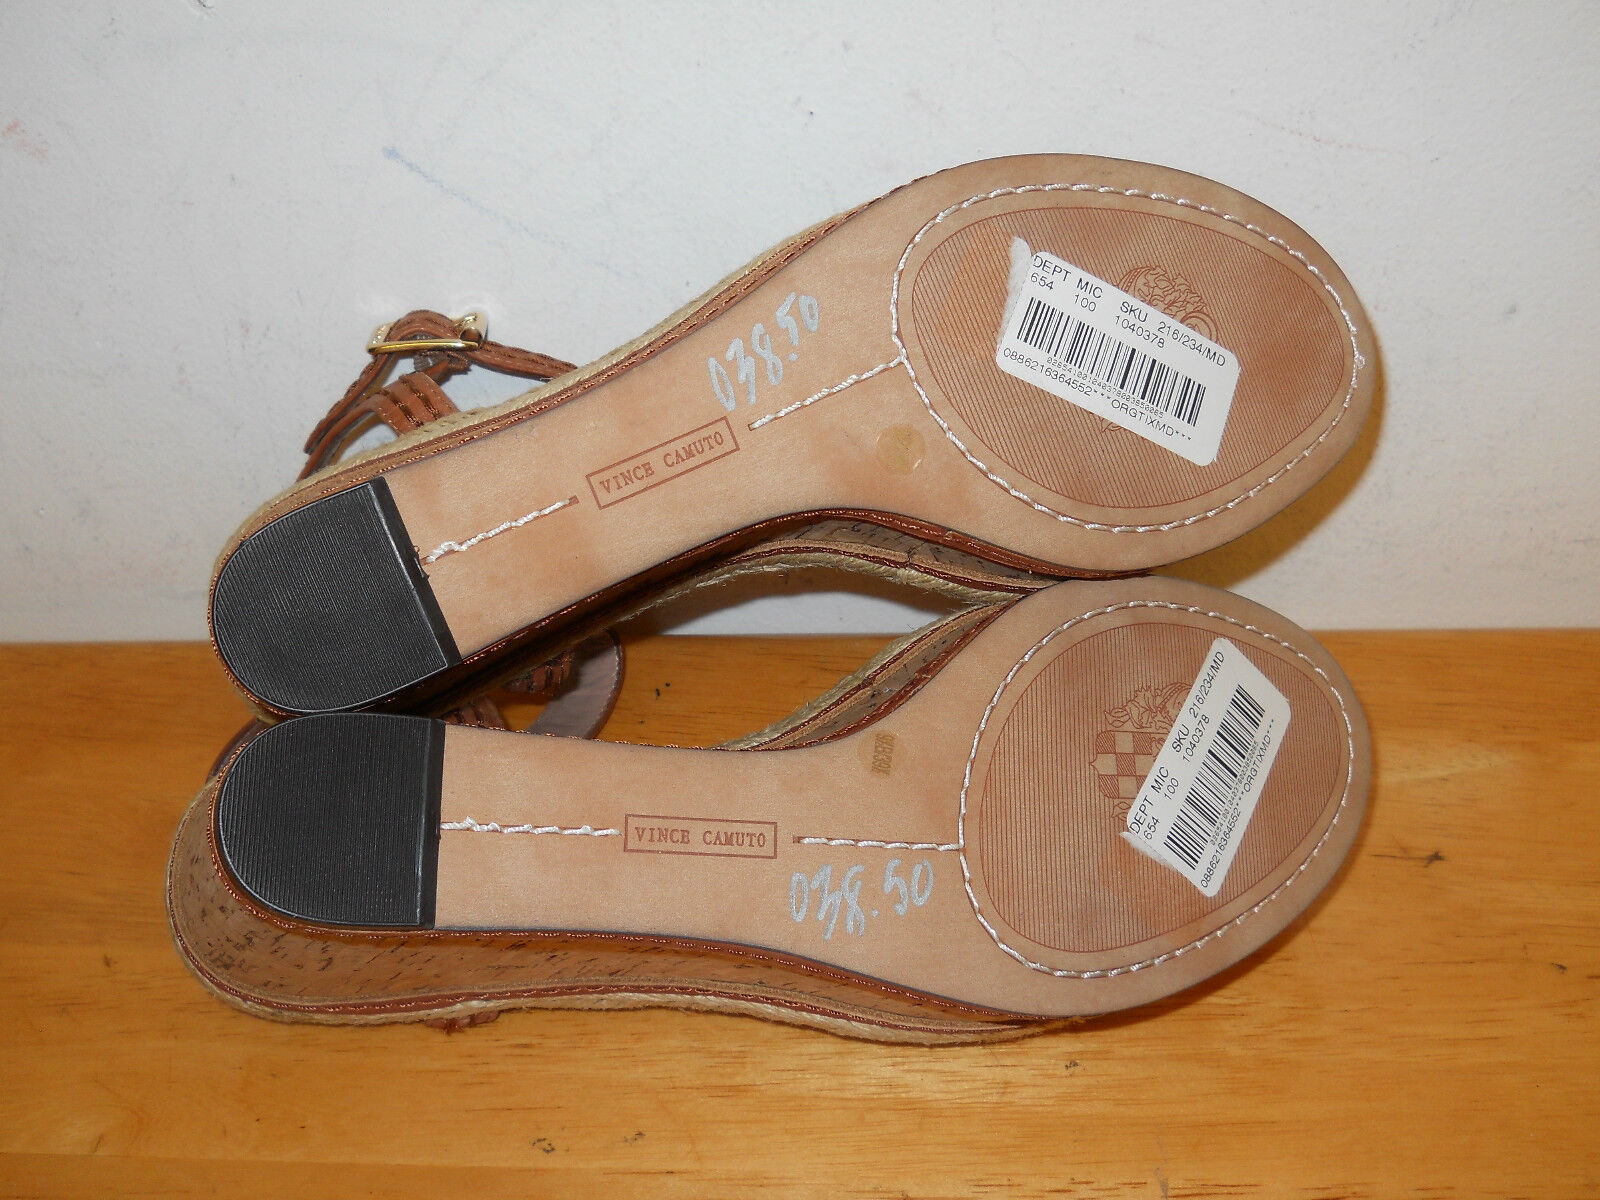 Vince Camuto New Donna Sebba Brown Leather Wedge NWOB Sandals 9.5 M Shoes NWOB Wedge 5493f8